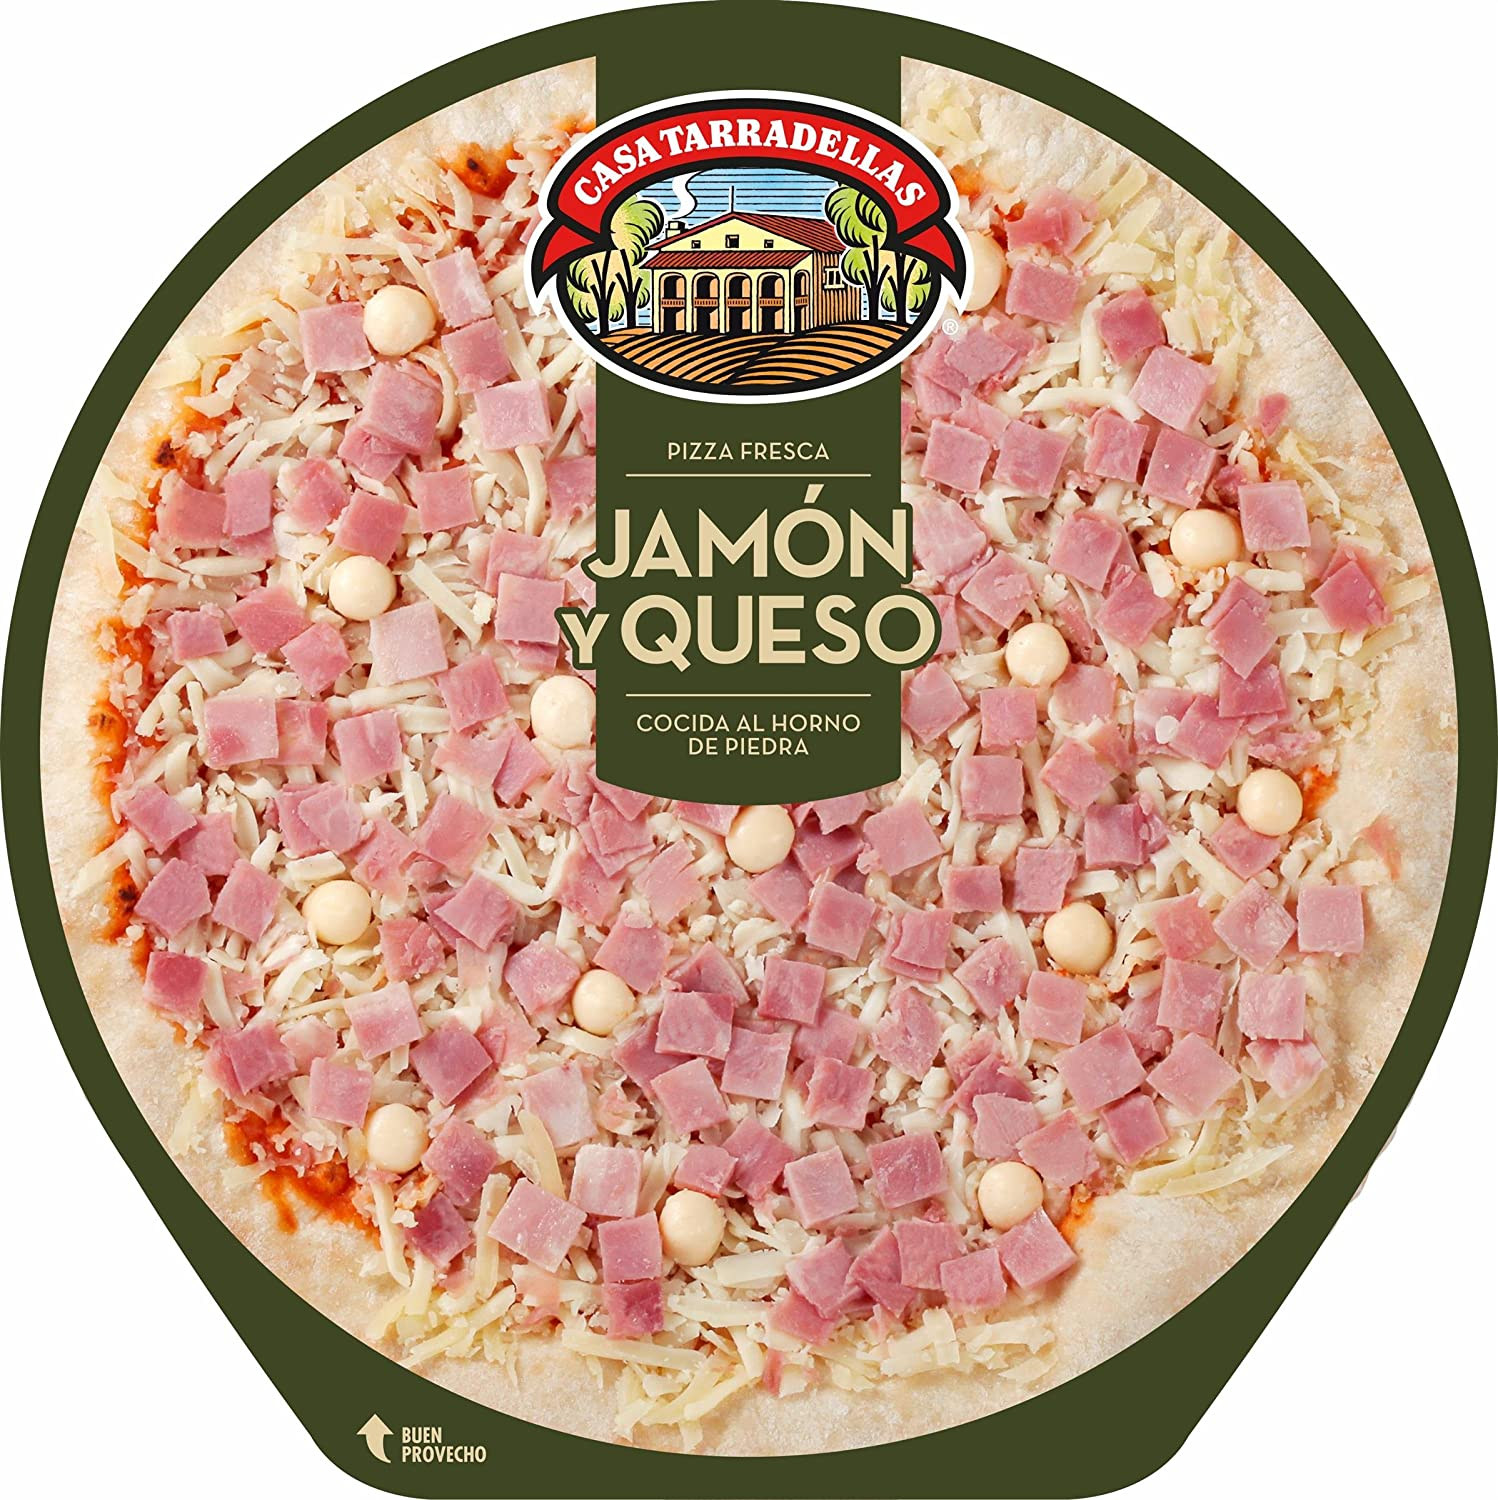 Casa Tarradellas Pizza Fresca Jamón y Queso - 405 gr: Amazon.es ...